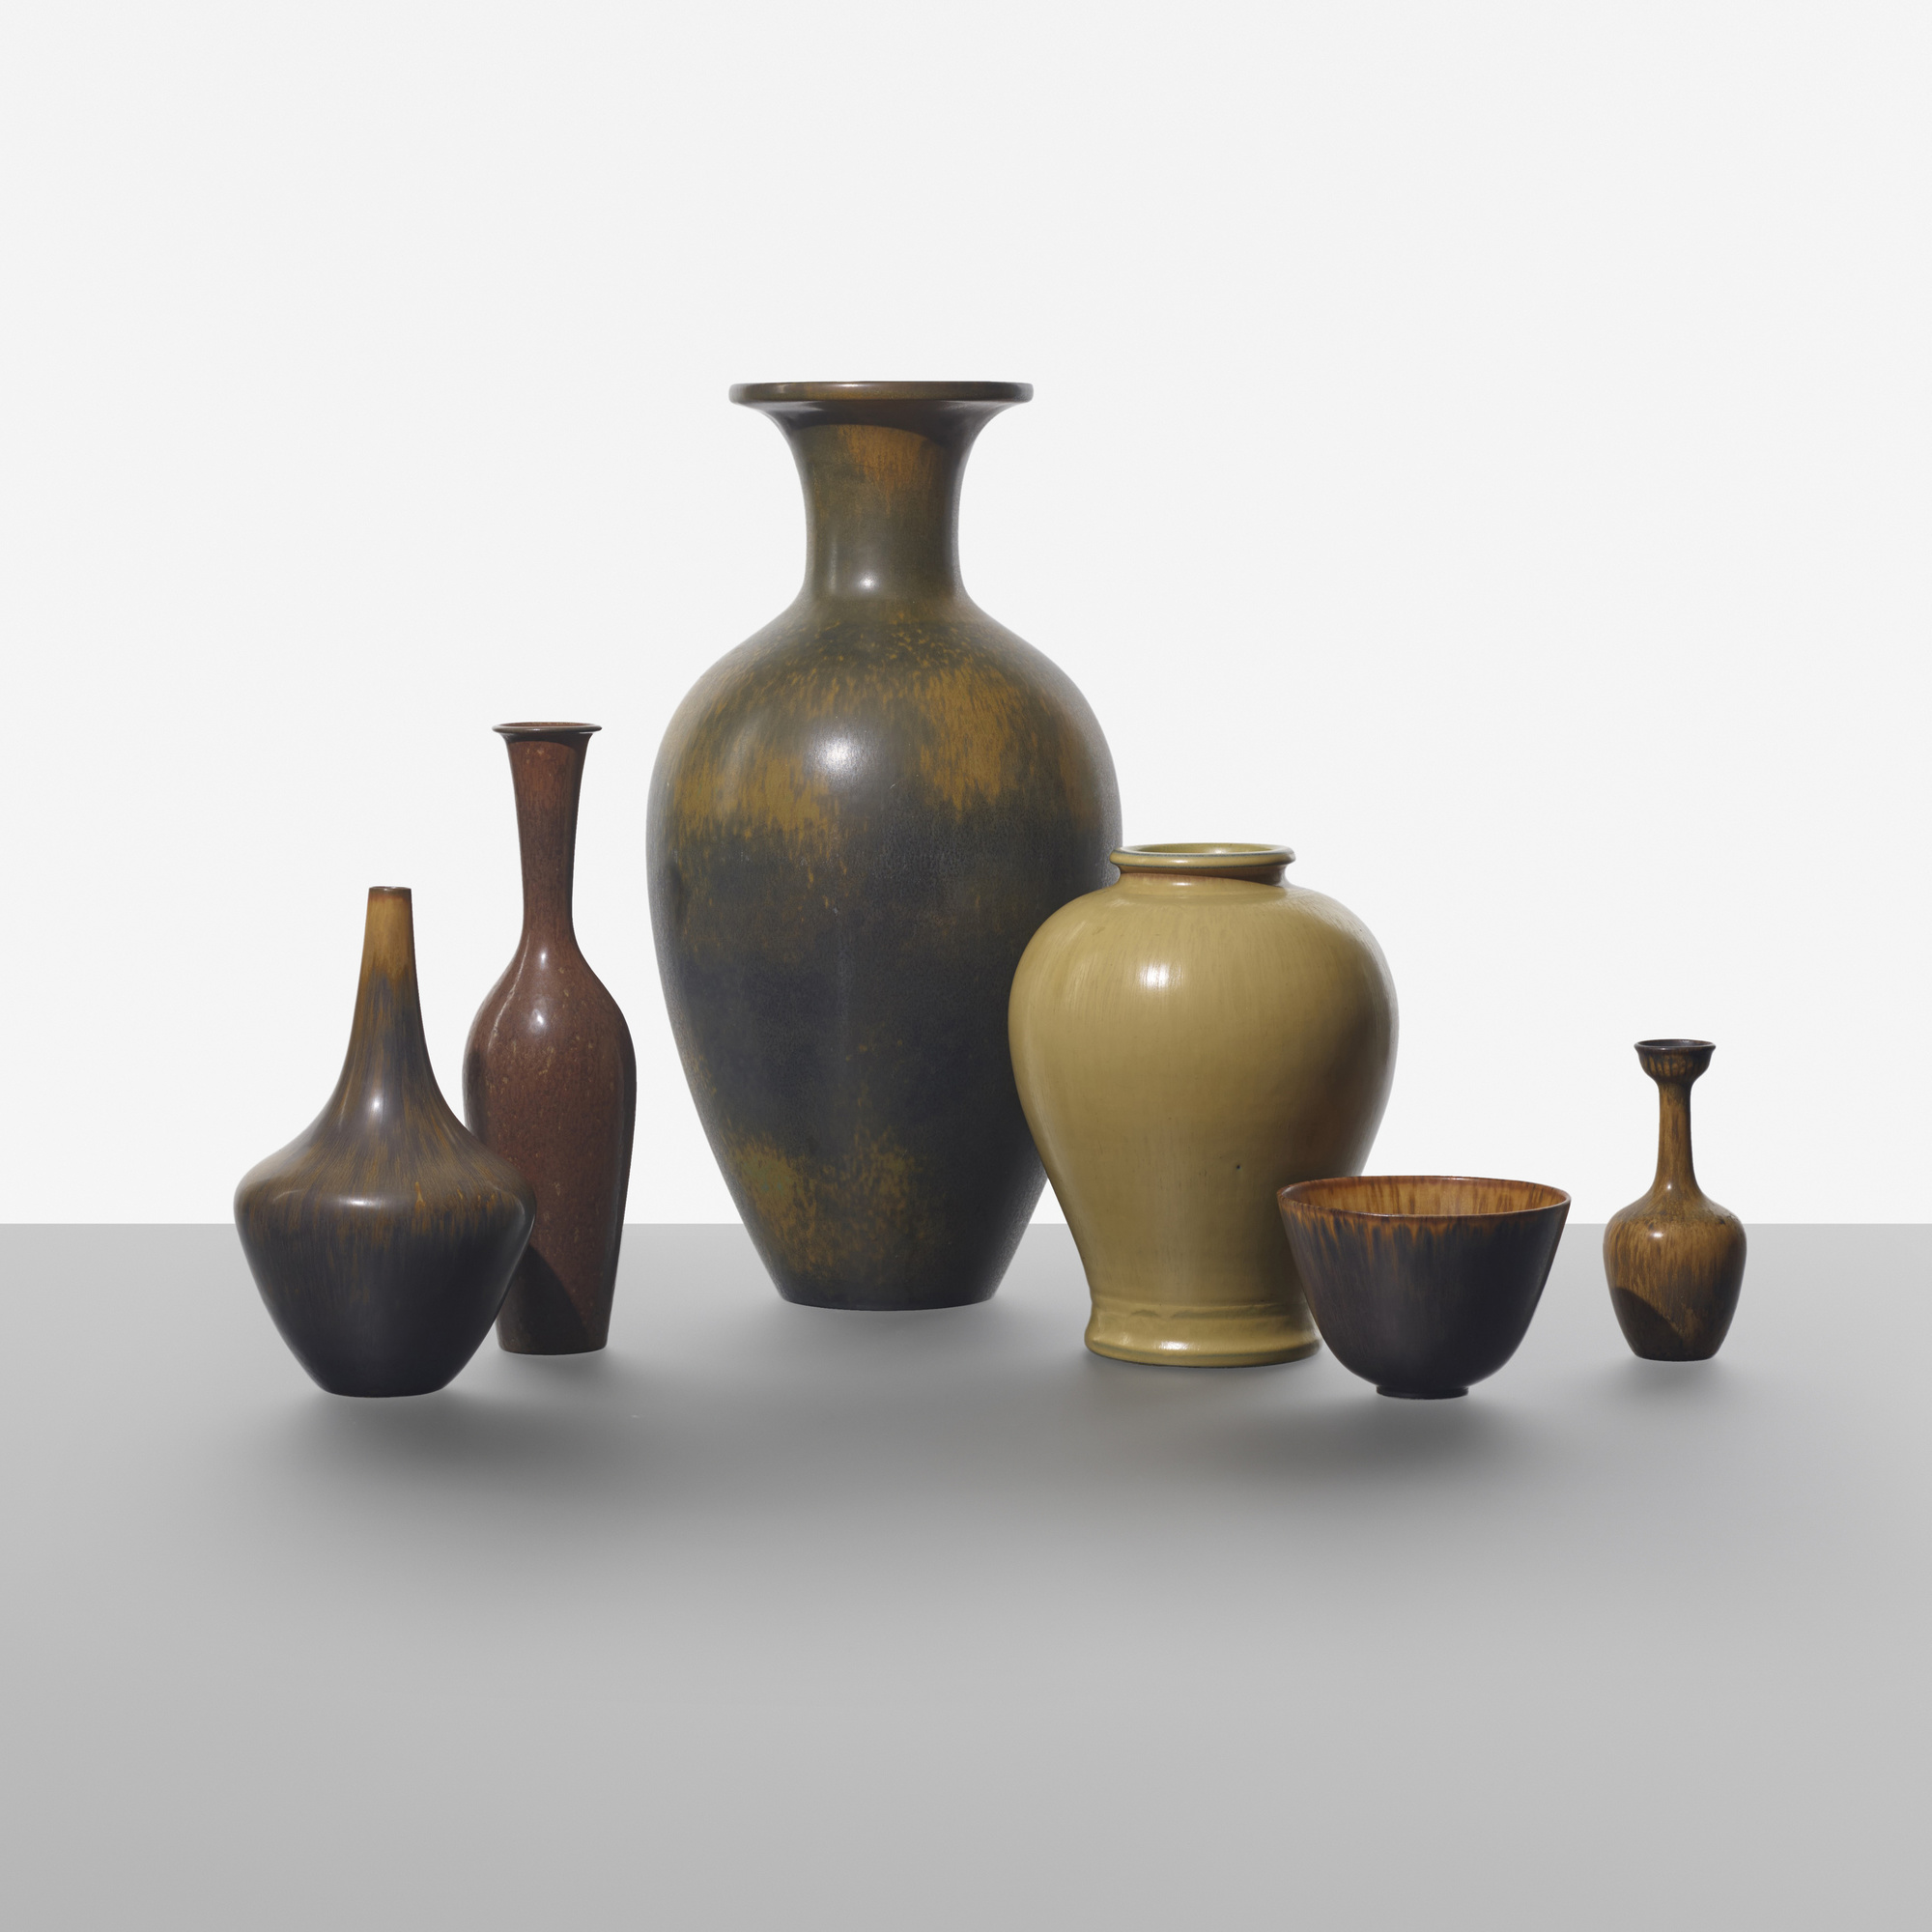 164: Gunnar Nylund / collection of six vases (1 of 2)